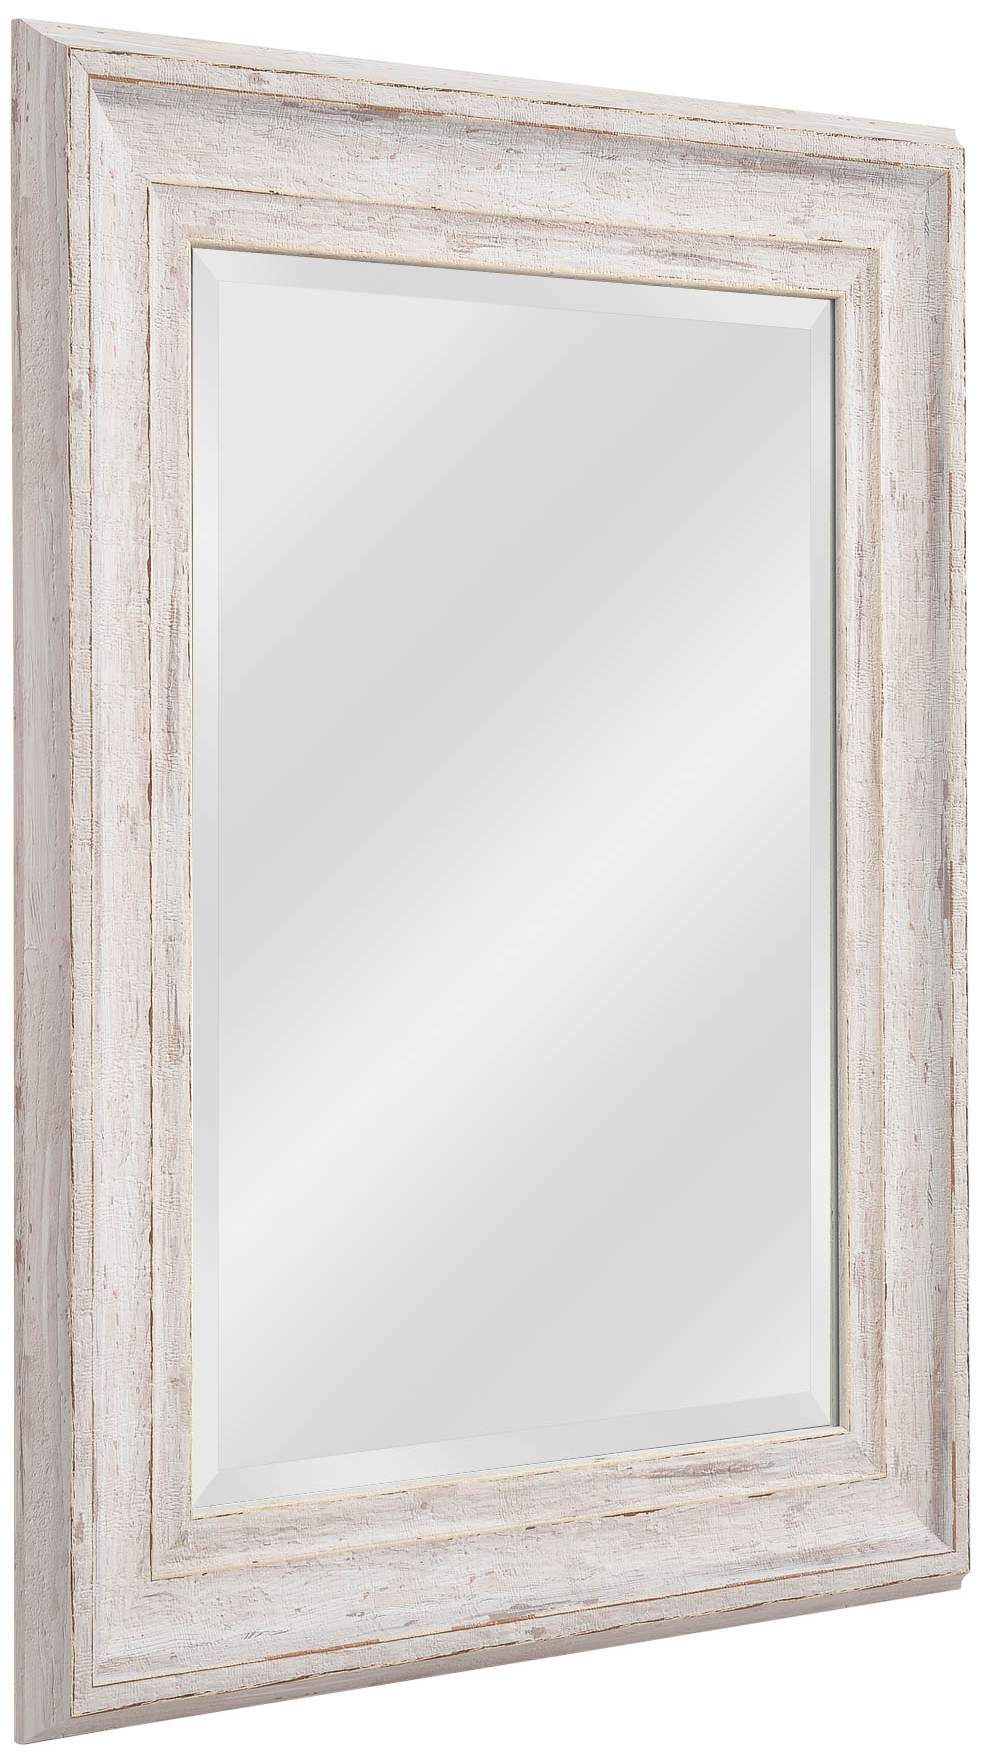 Warren Distressed White Wood 25 And One Quarter Inch X 31 And One Quarter Inch Wall Mirror In 2020 Mirror Wall White Wood Mirror